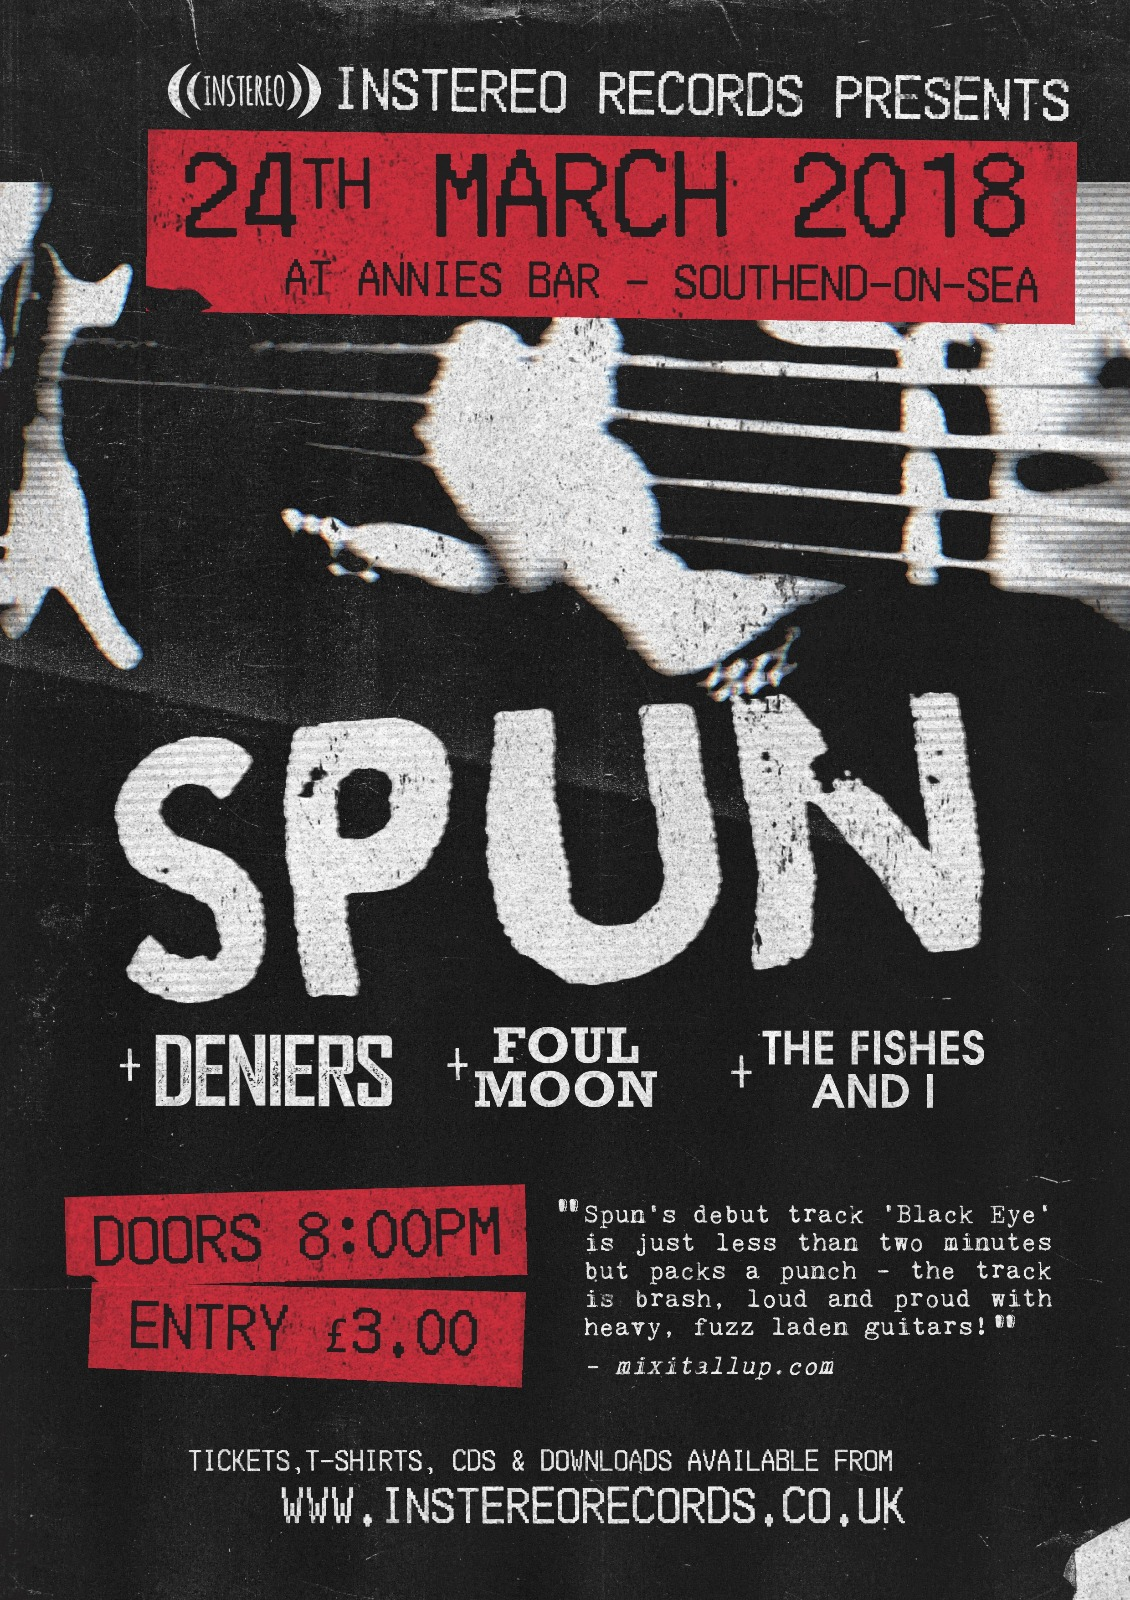 INSTEREO RECORDS PRESENTS: SPUN, DENIERS, FOUL MOON AND THE FISHES & I